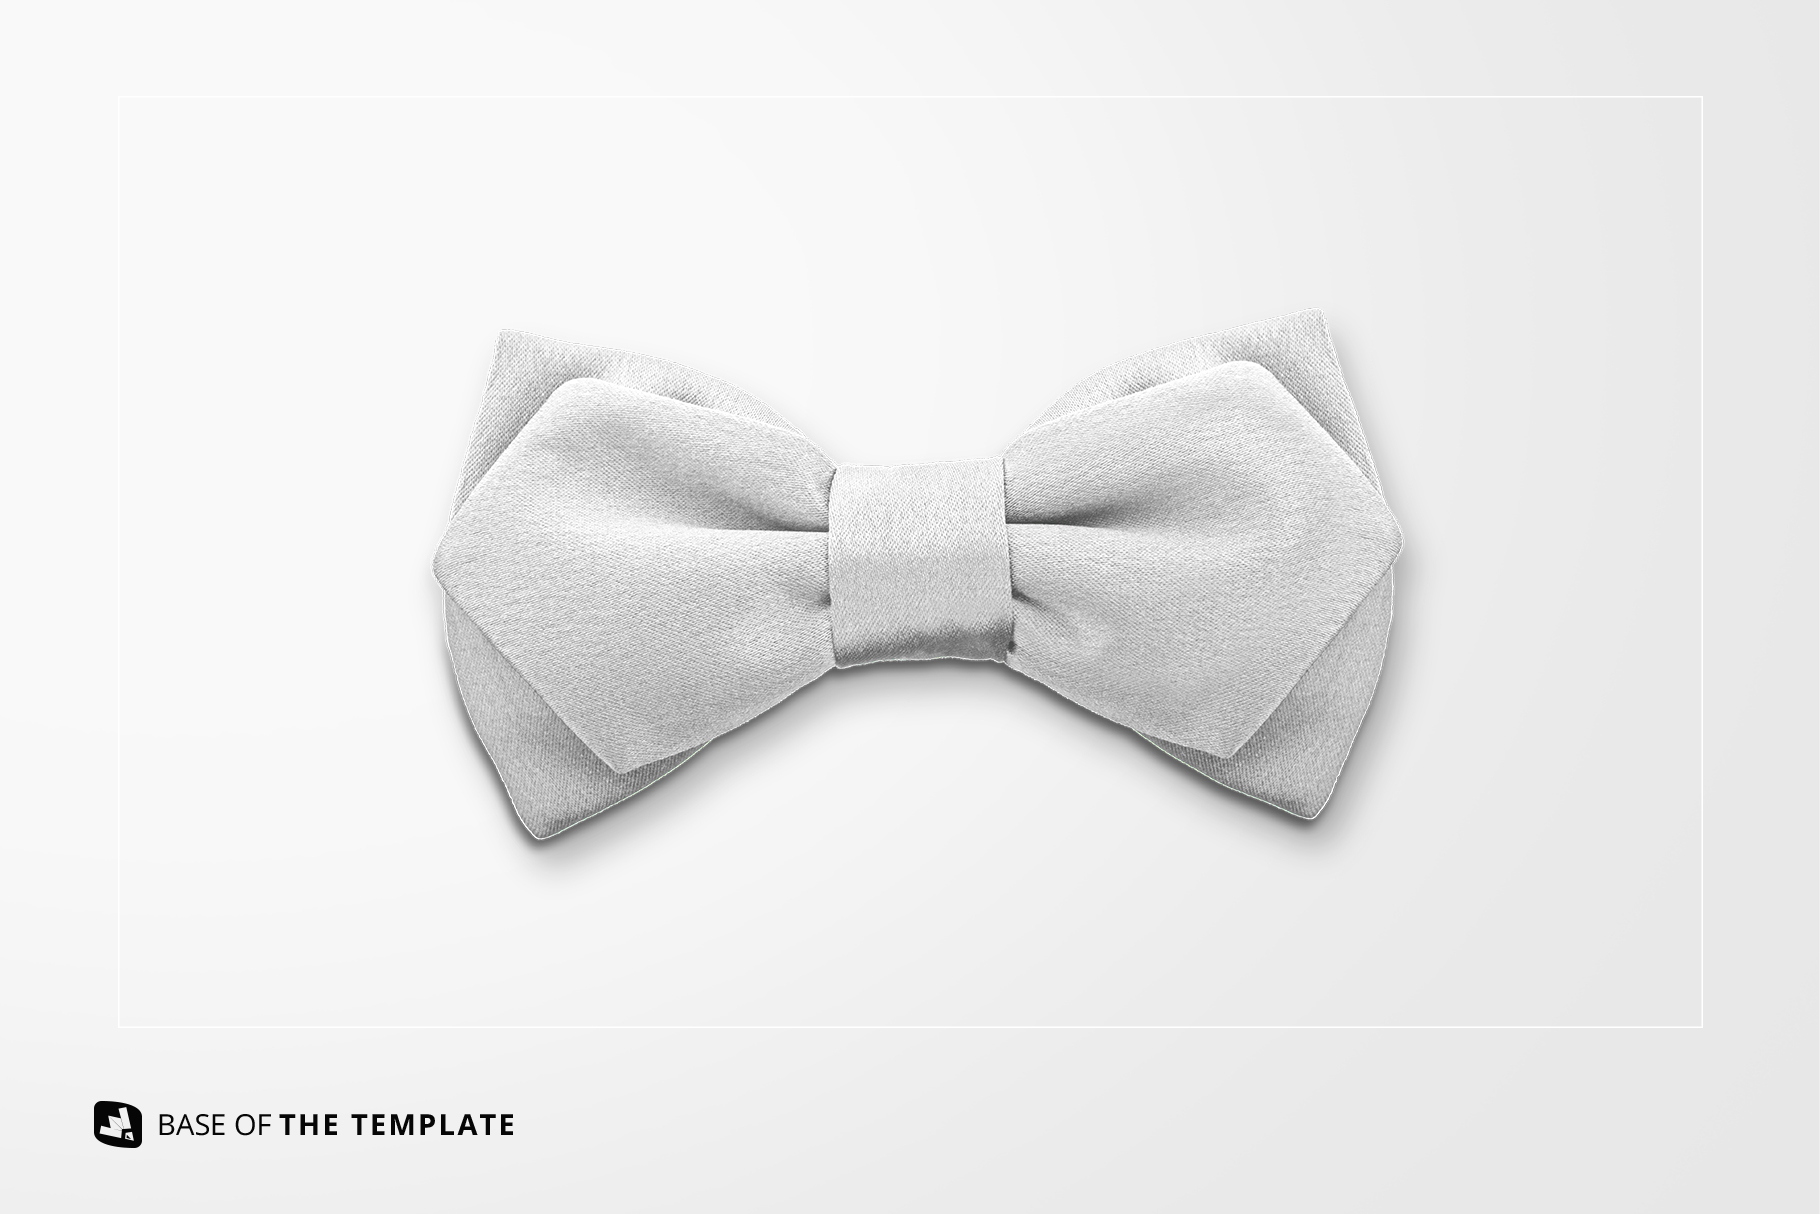 base image of the two-ply bow tie mockup